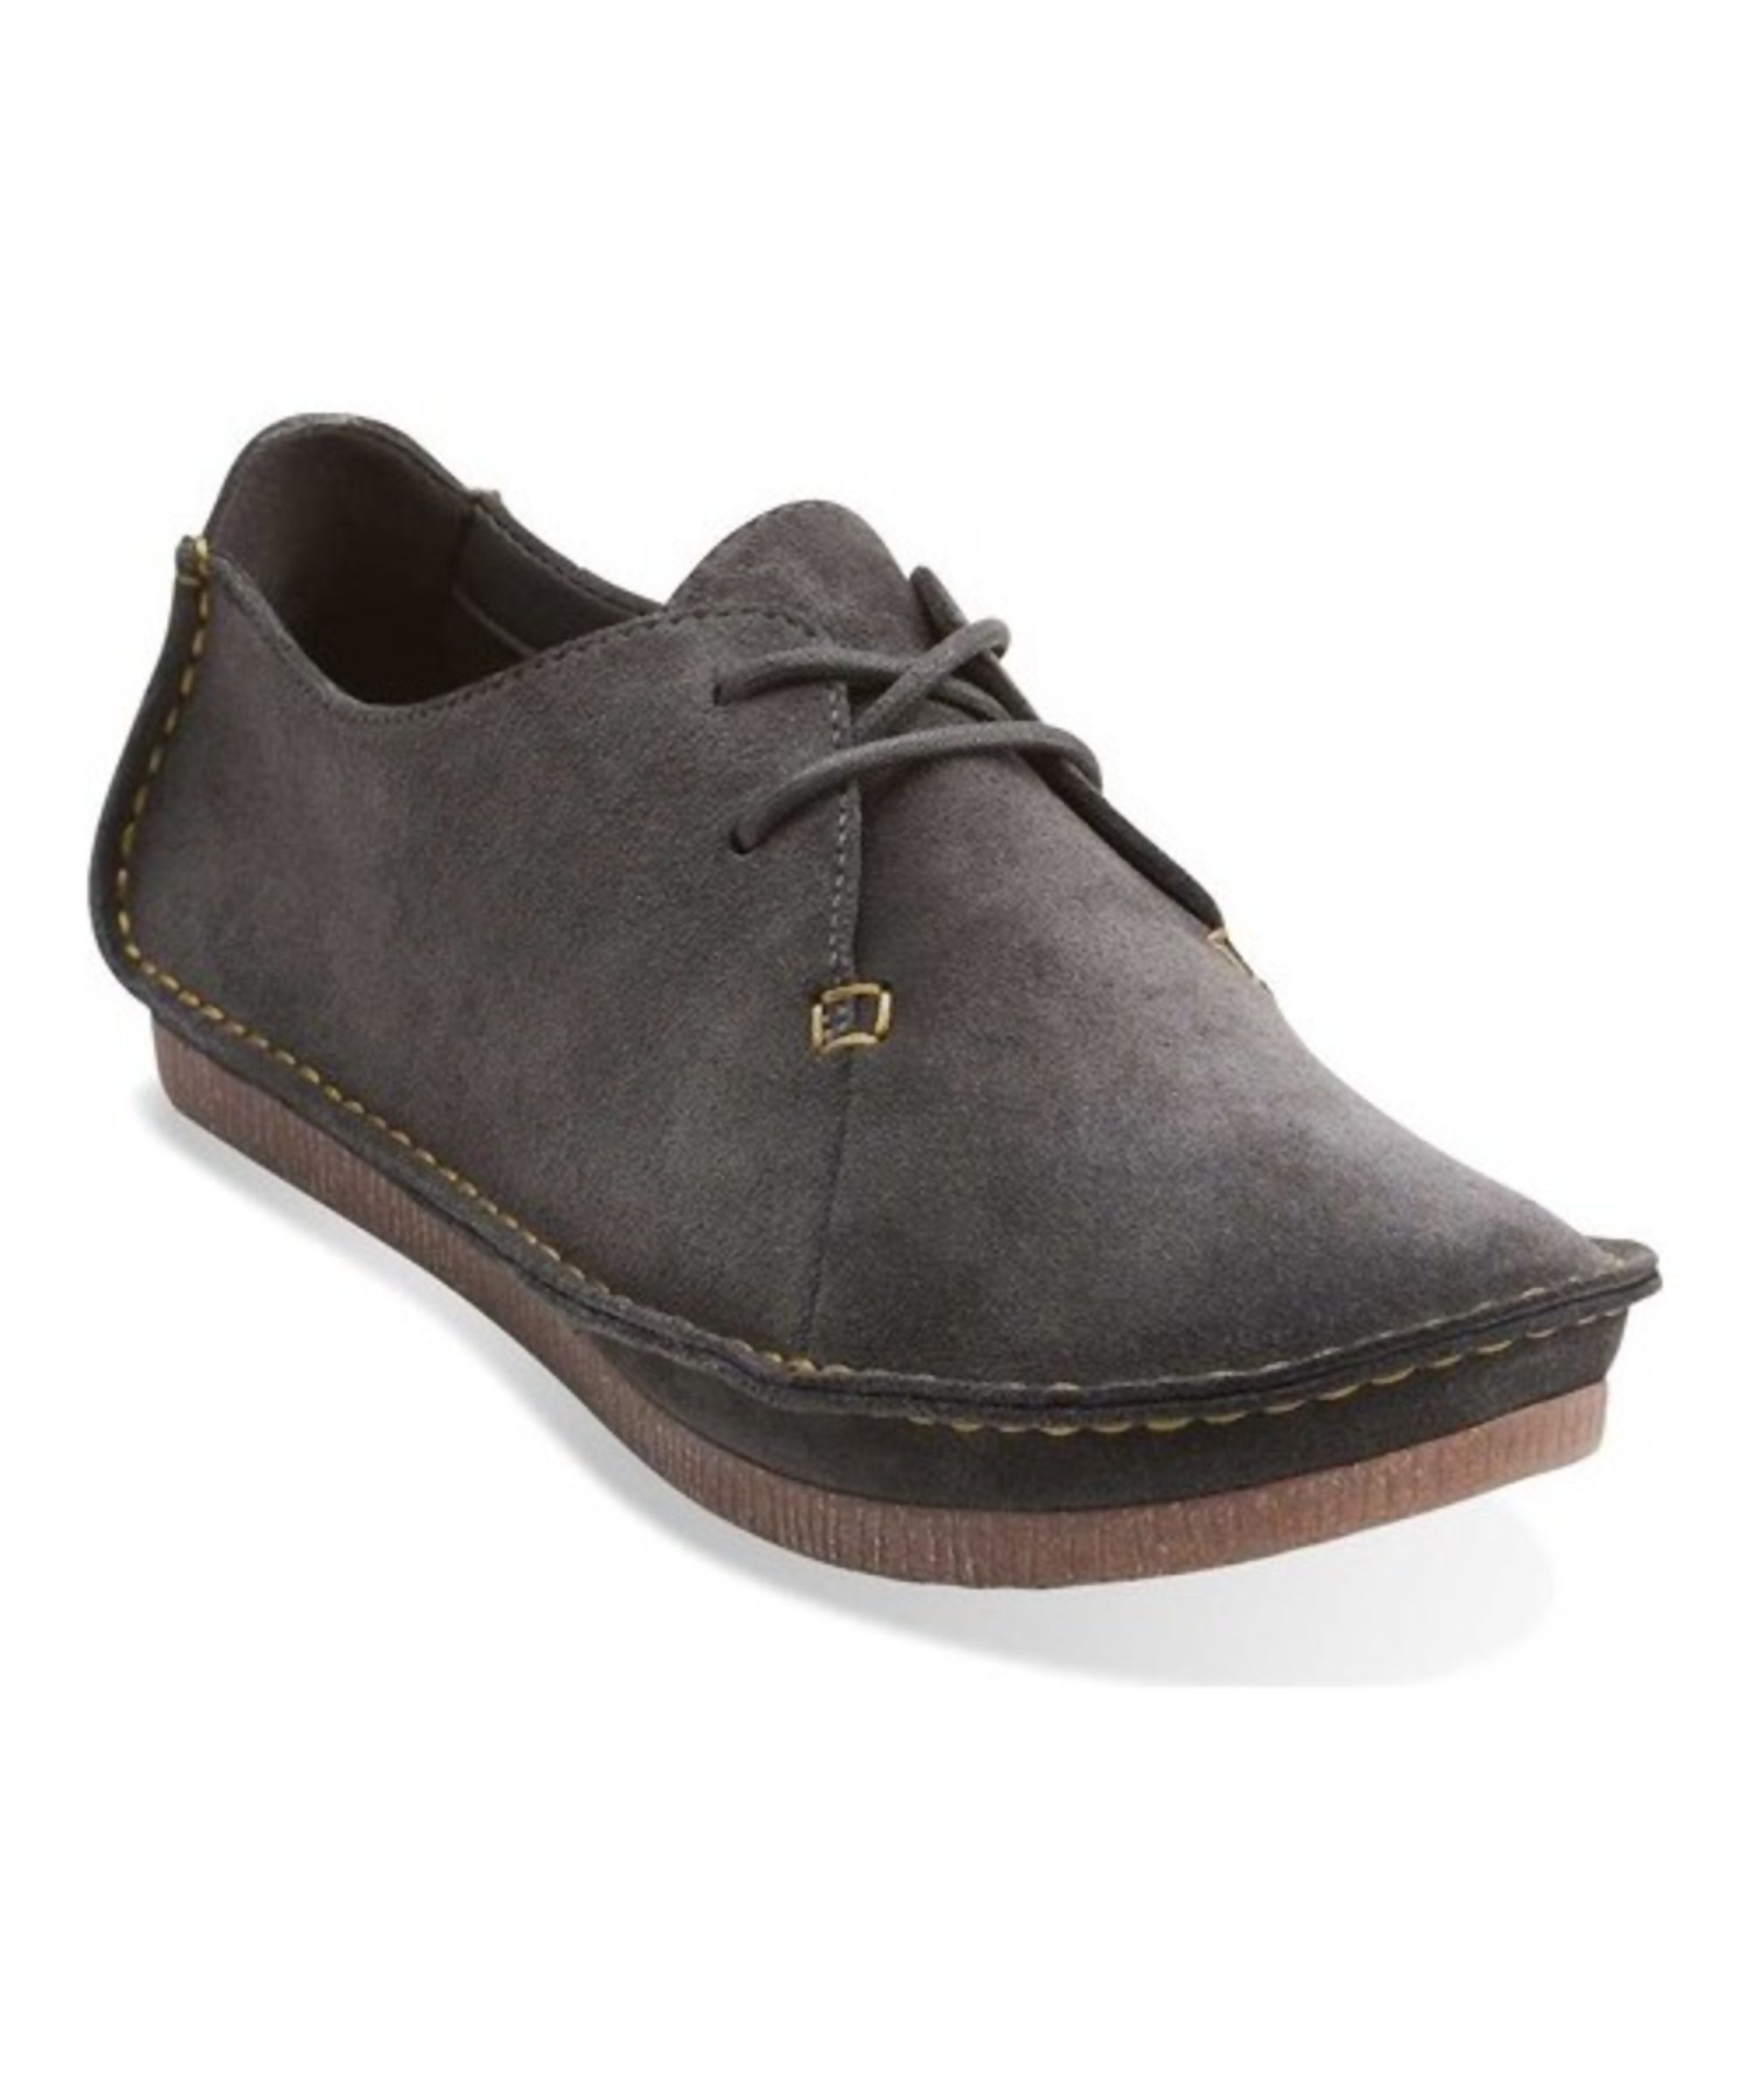 CLARKS | Clarks Women's Janey Mae Lace Up Shoe #Shoes #Sneakers #CLARKS